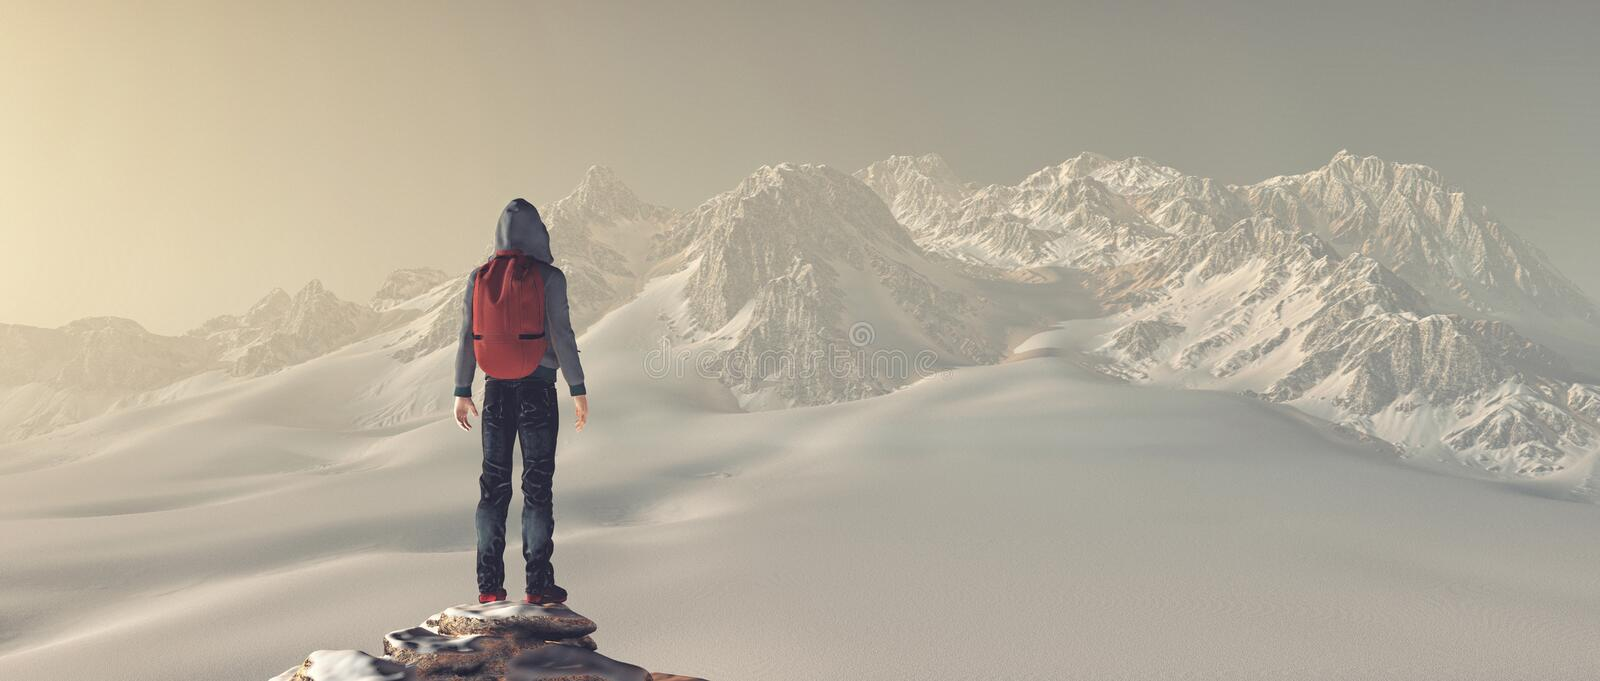 Climber on top of a mountain stock photo